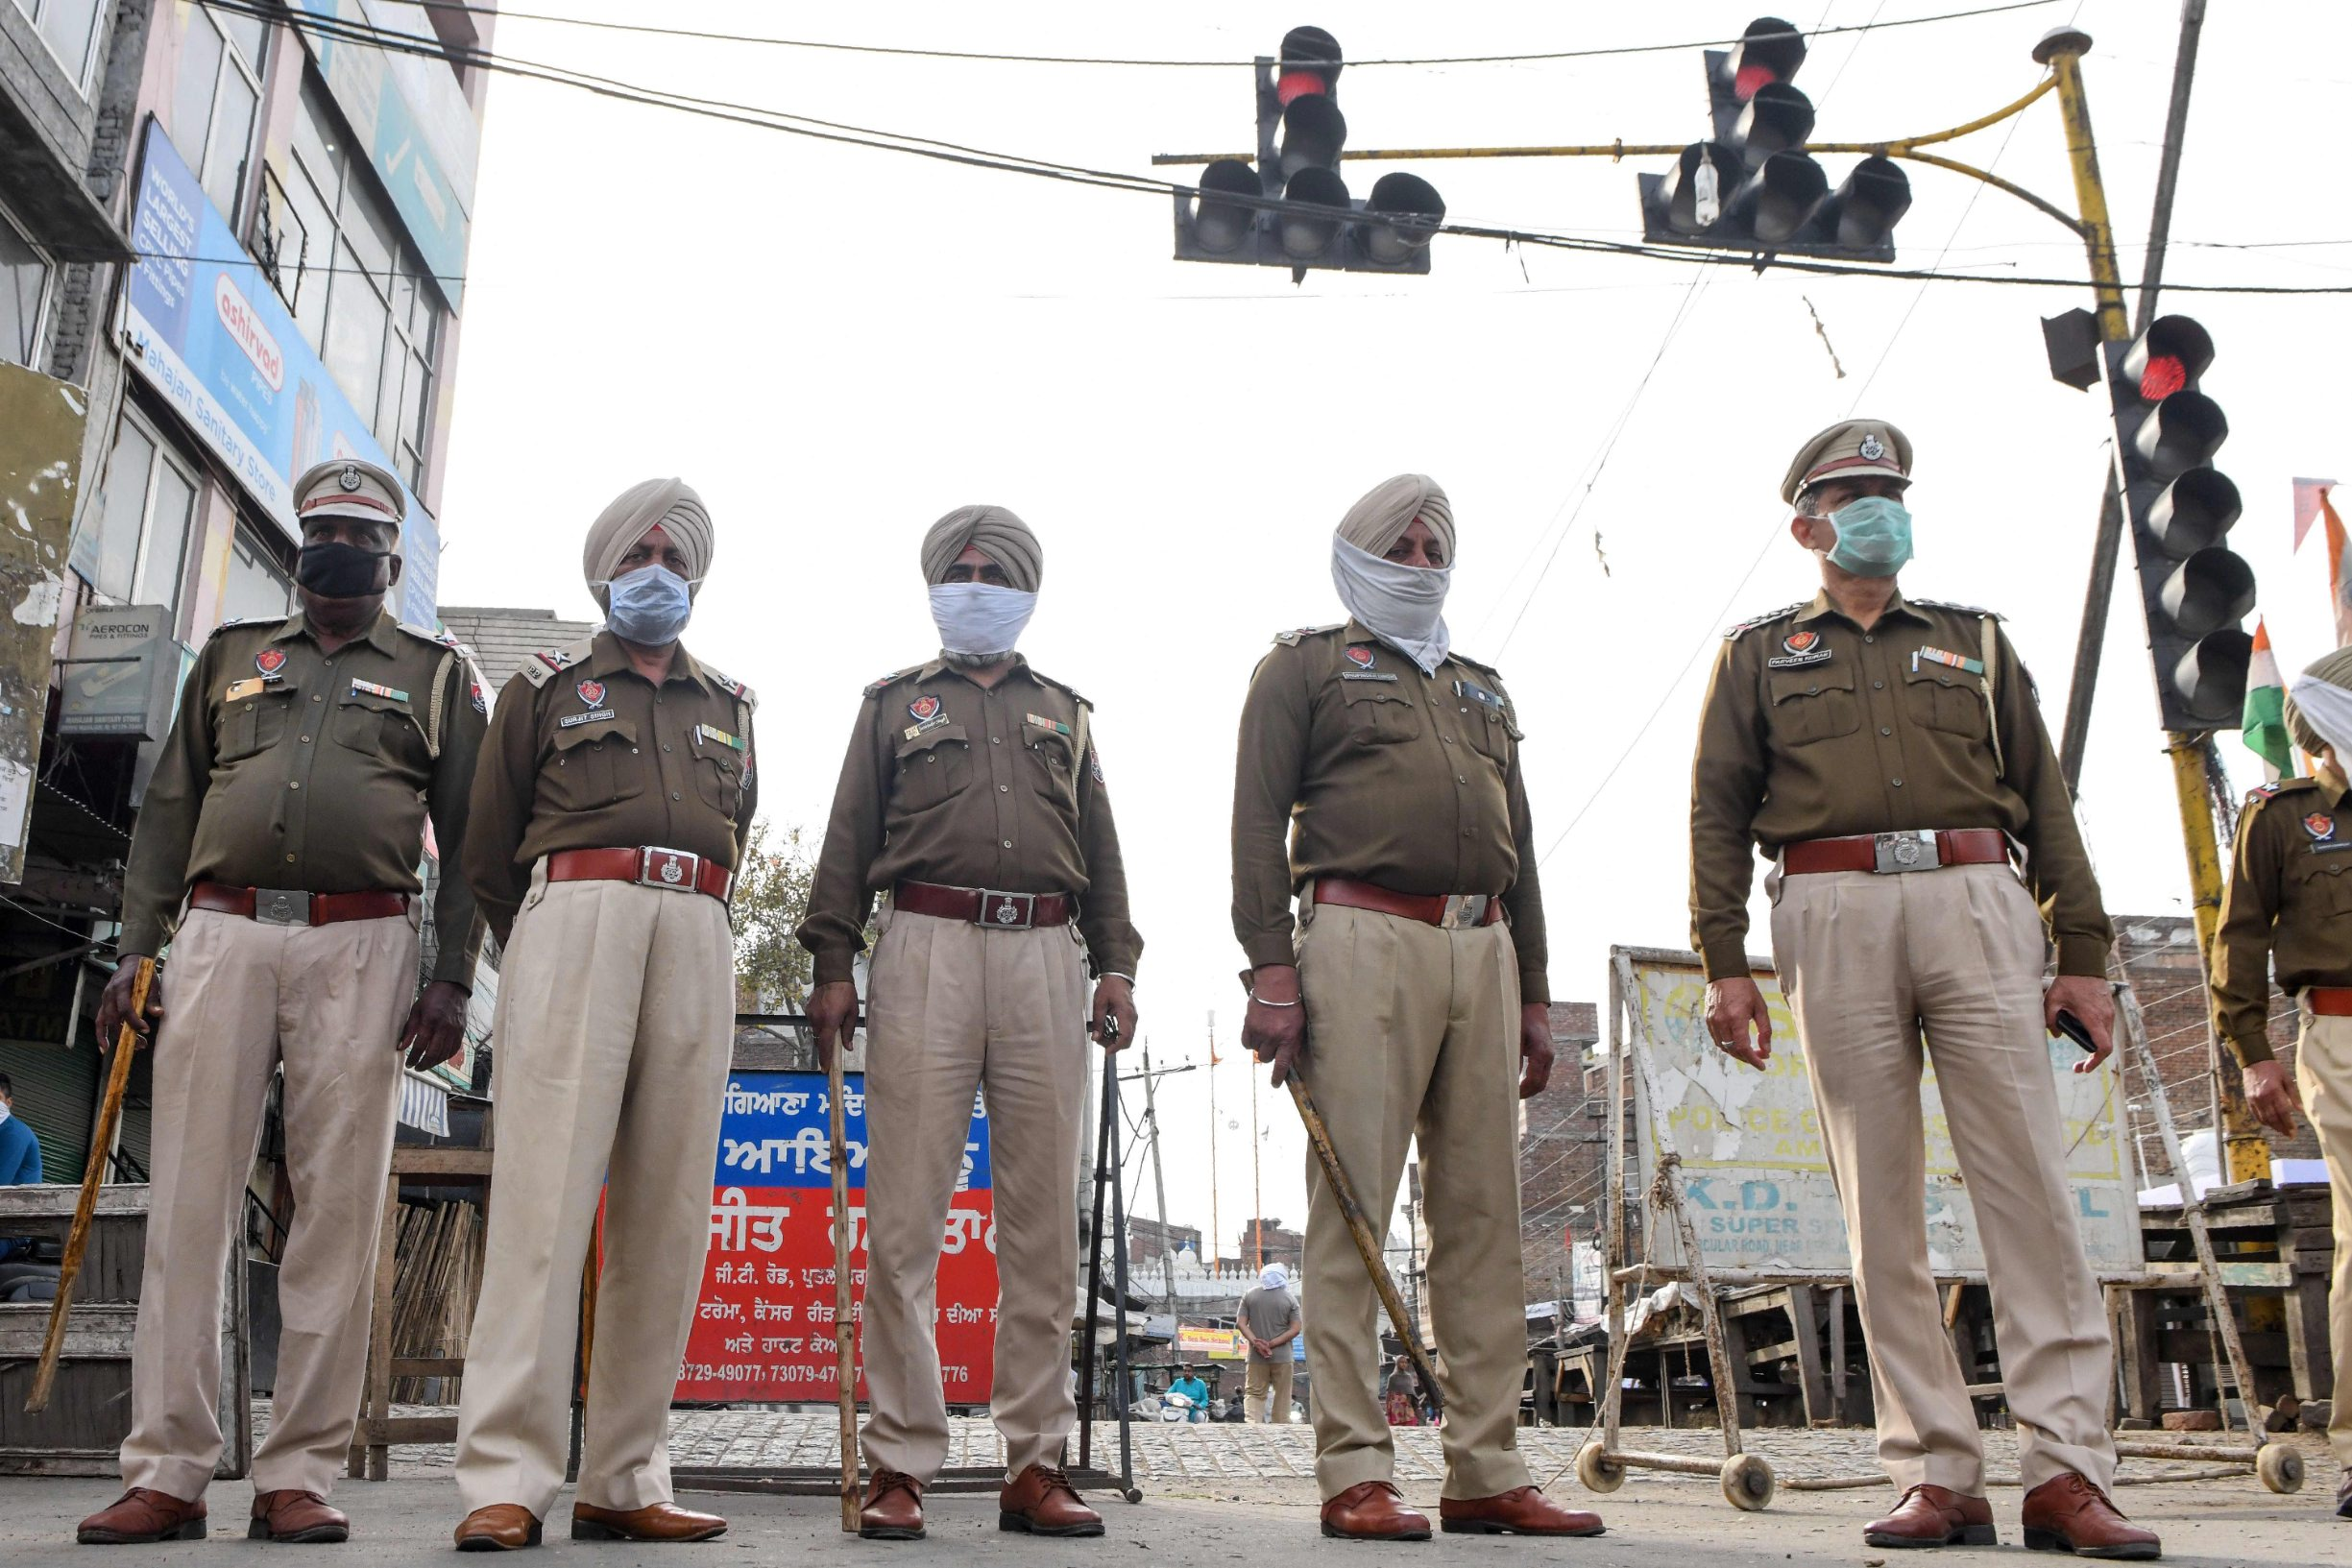 Police personnel stand guard at a traffic light during the first day of a 21-day government-imposed nationwide lockdown as a preventive measure against the COVID-19 coronavirus, in Amritsar on March 25, 2020. (Photo by NARINDER NANU / AFP)